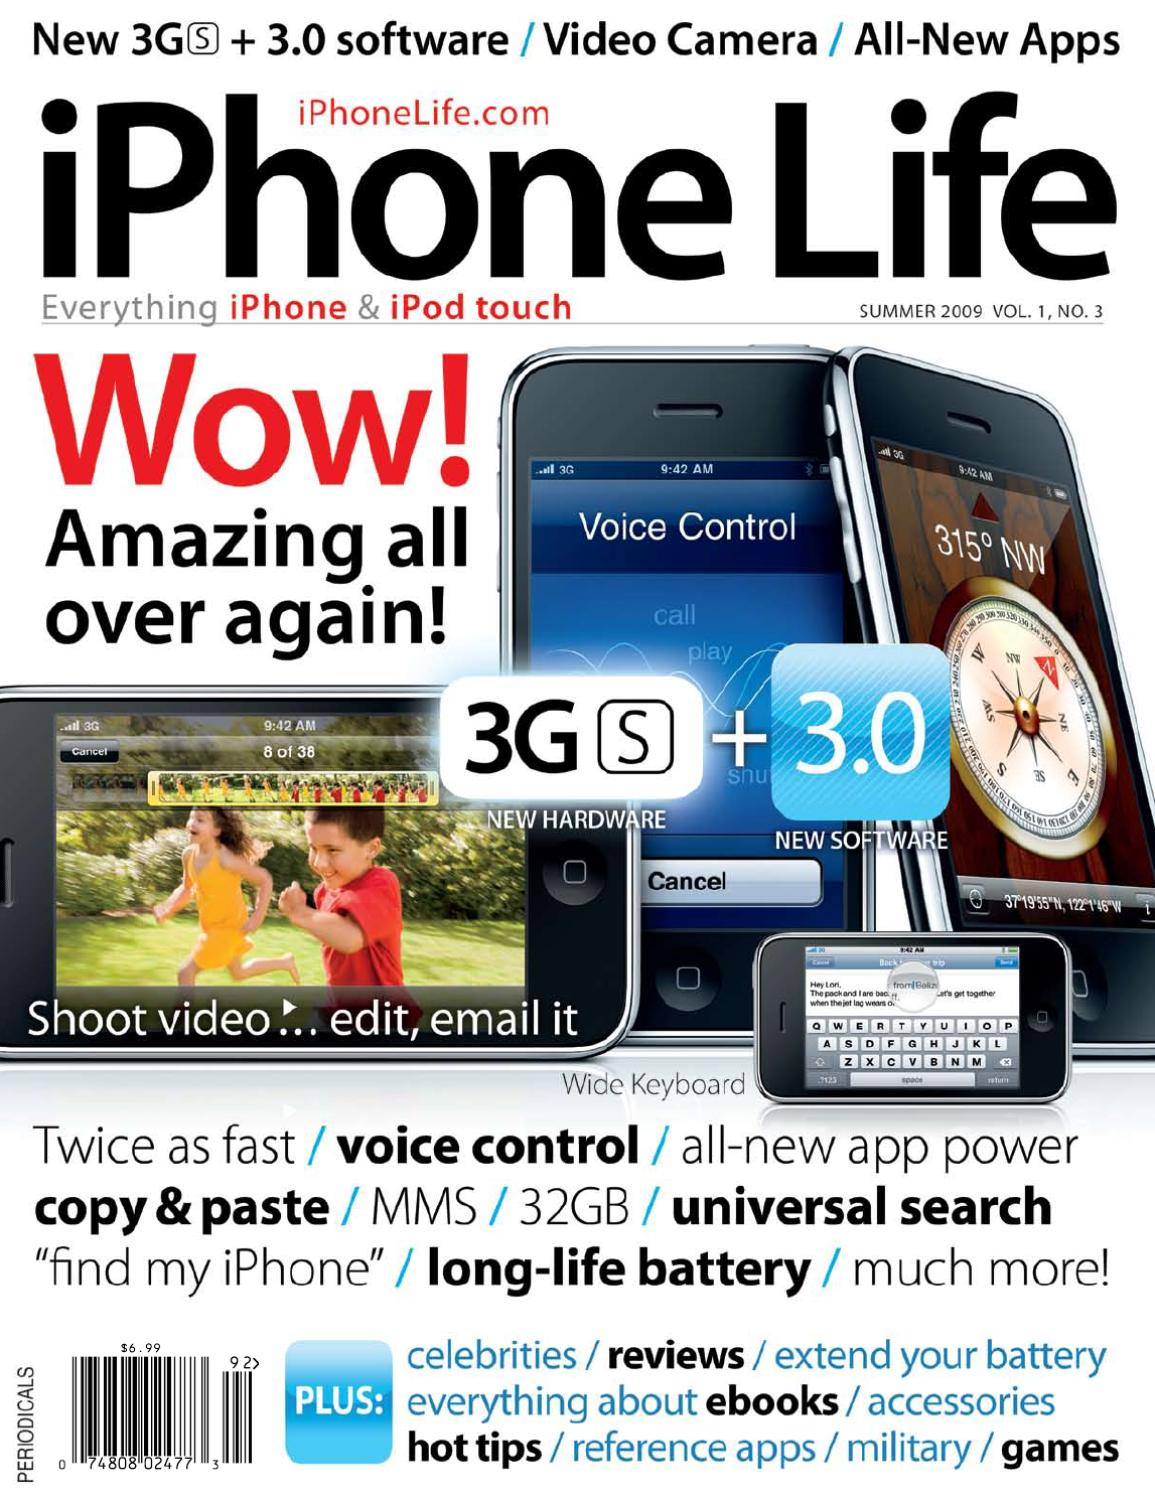 iphone life vol1 no3 2009 by iphone repair services issuu